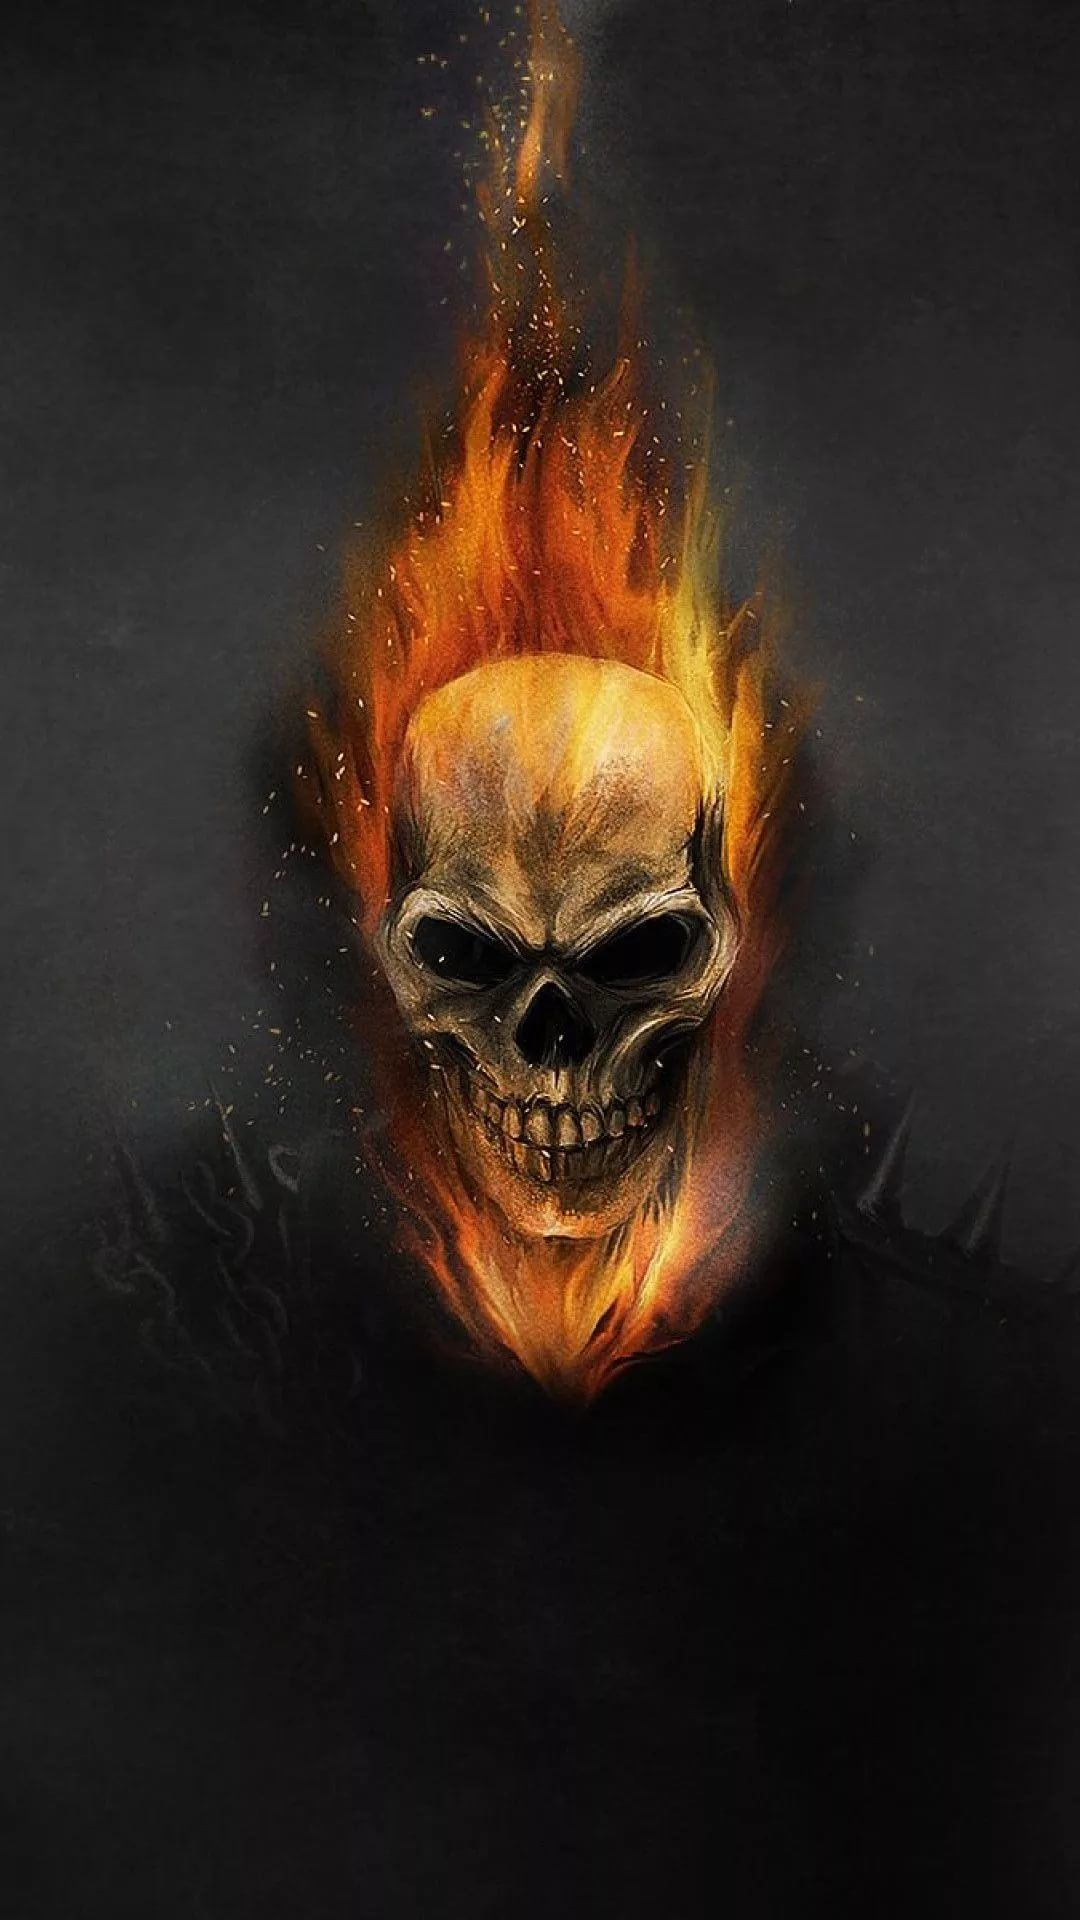 Ghost Rider wallpaper for Android